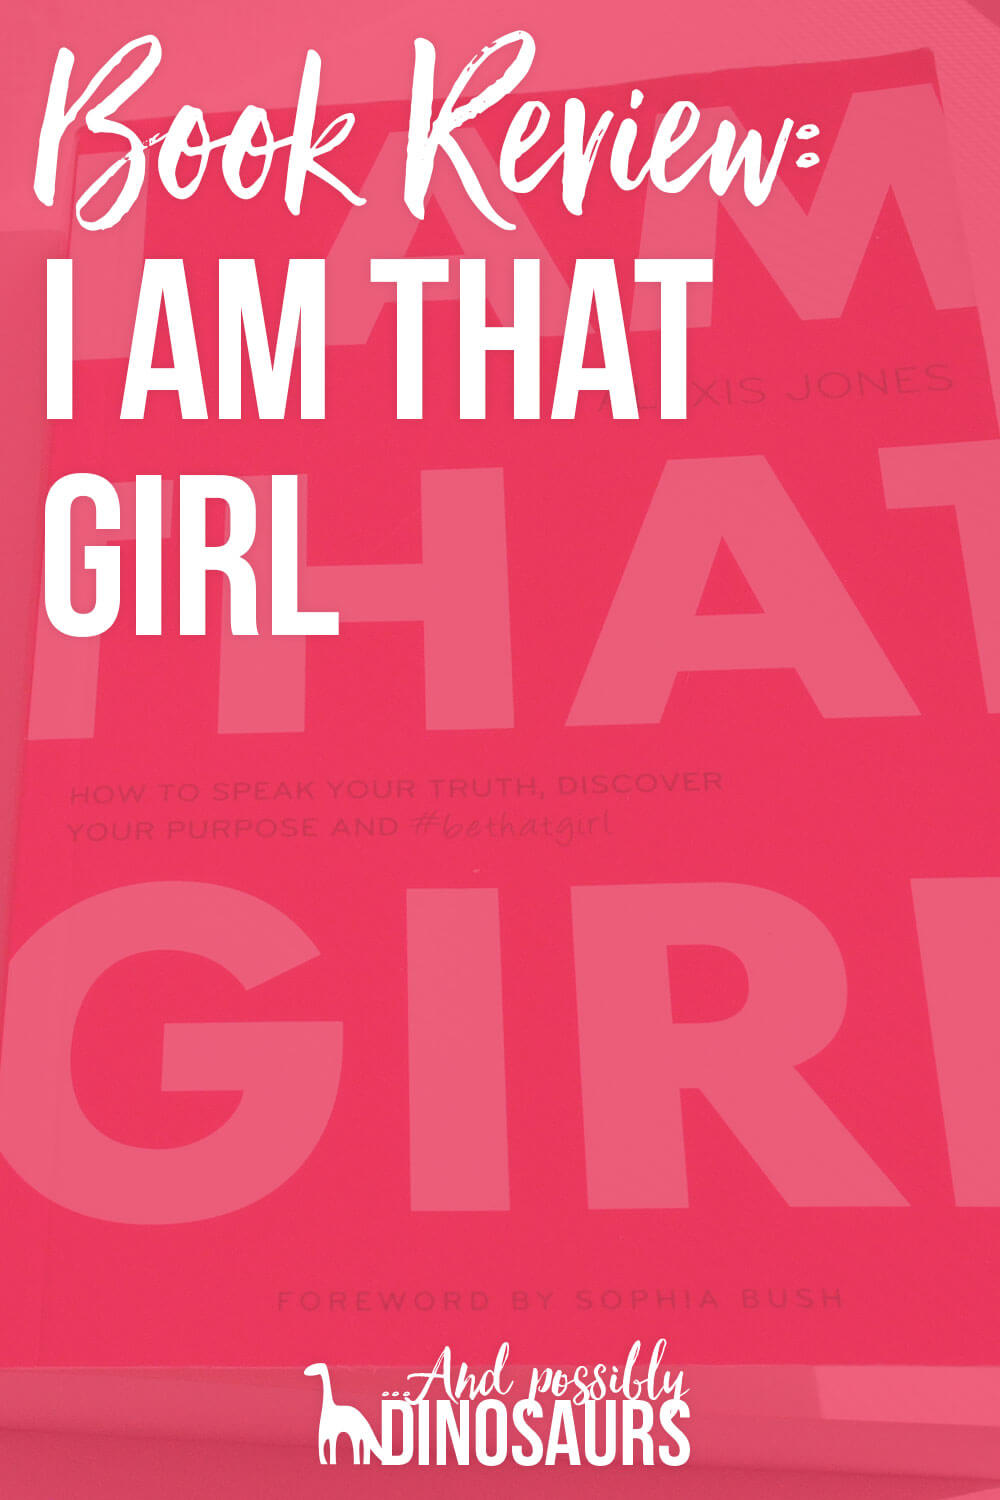 Book Review: I Am That Girl